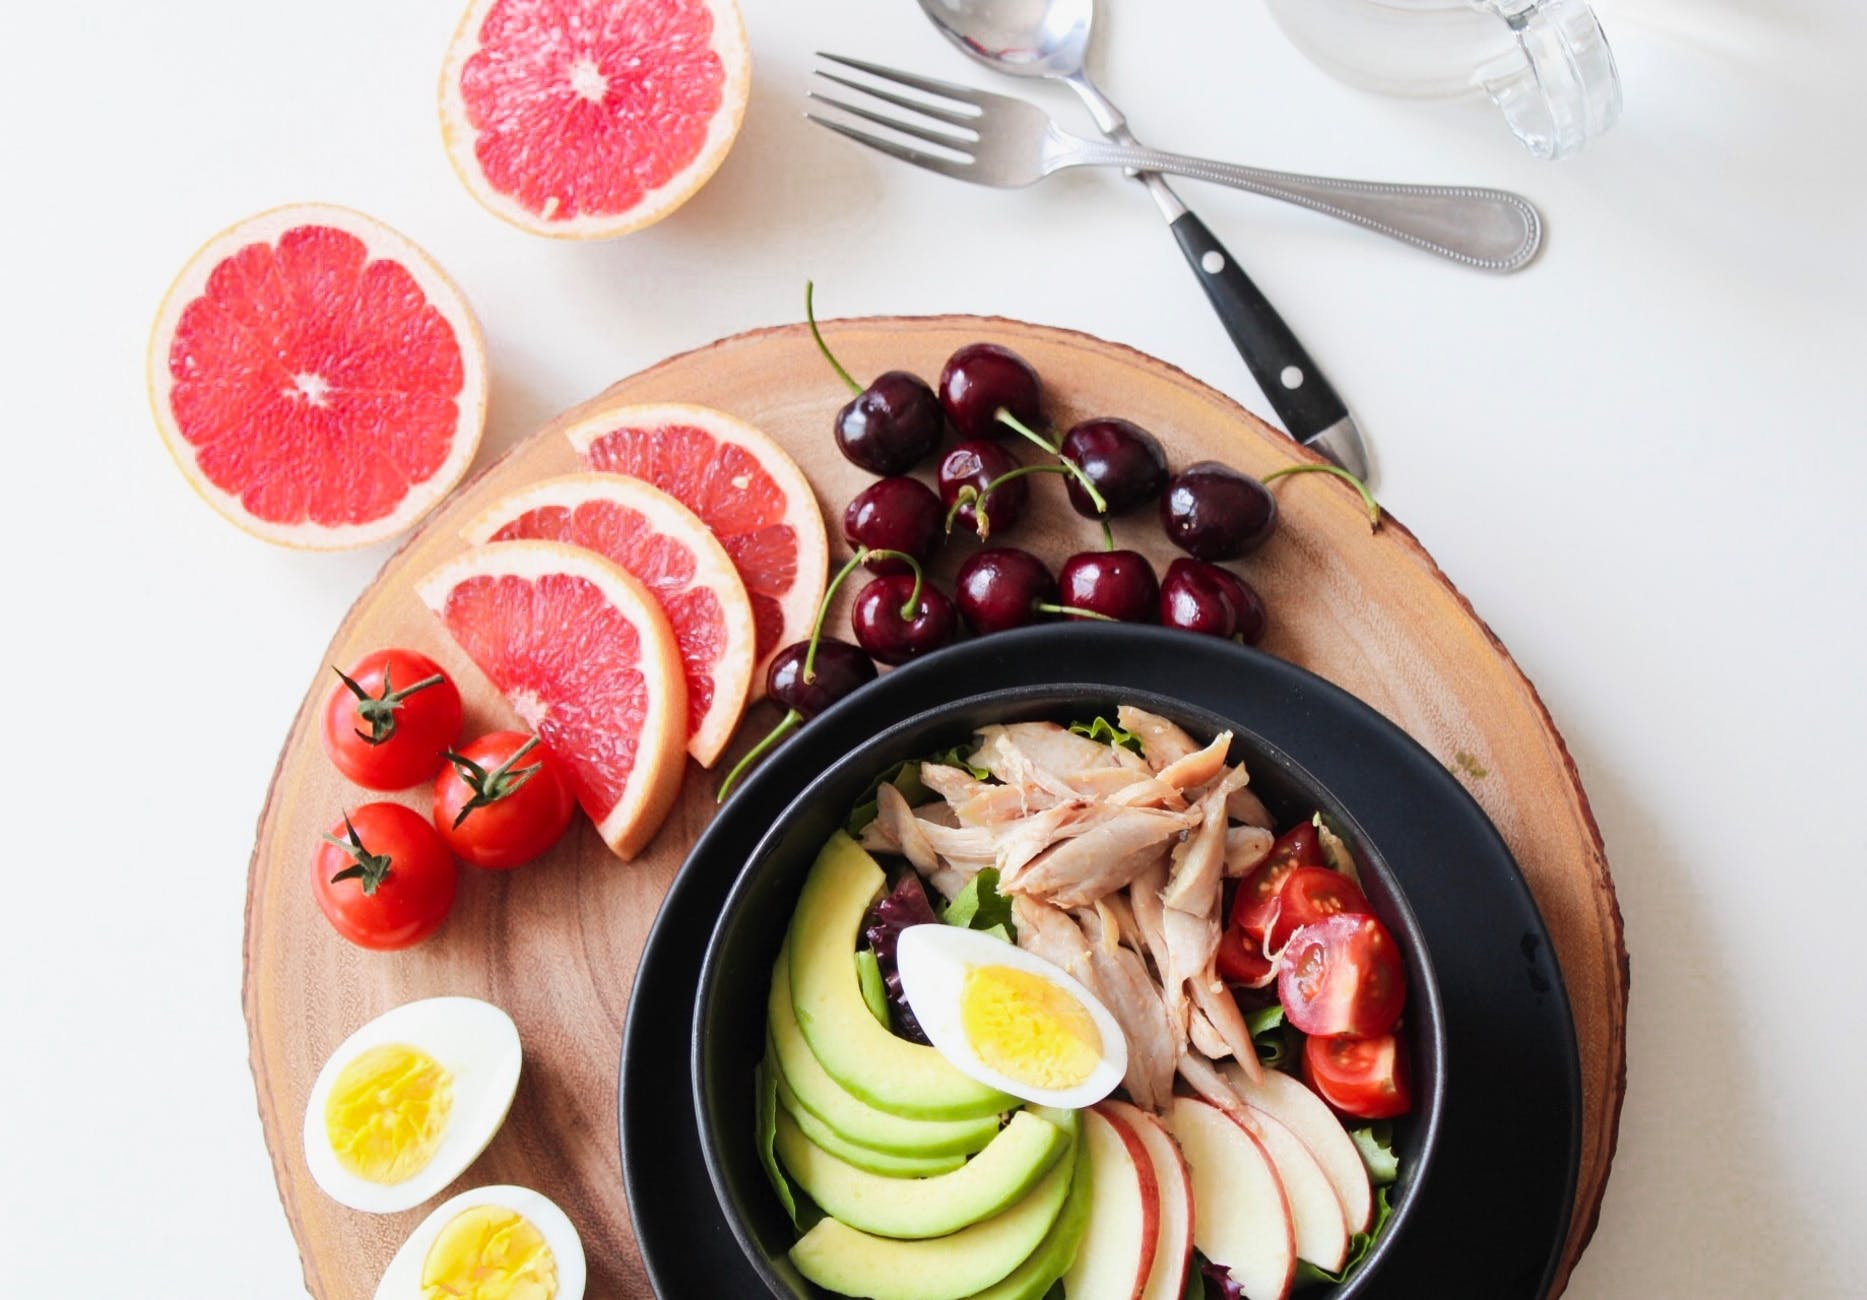 Good Nutrition: Why Is It Important For Your Physical & Emotional Health?